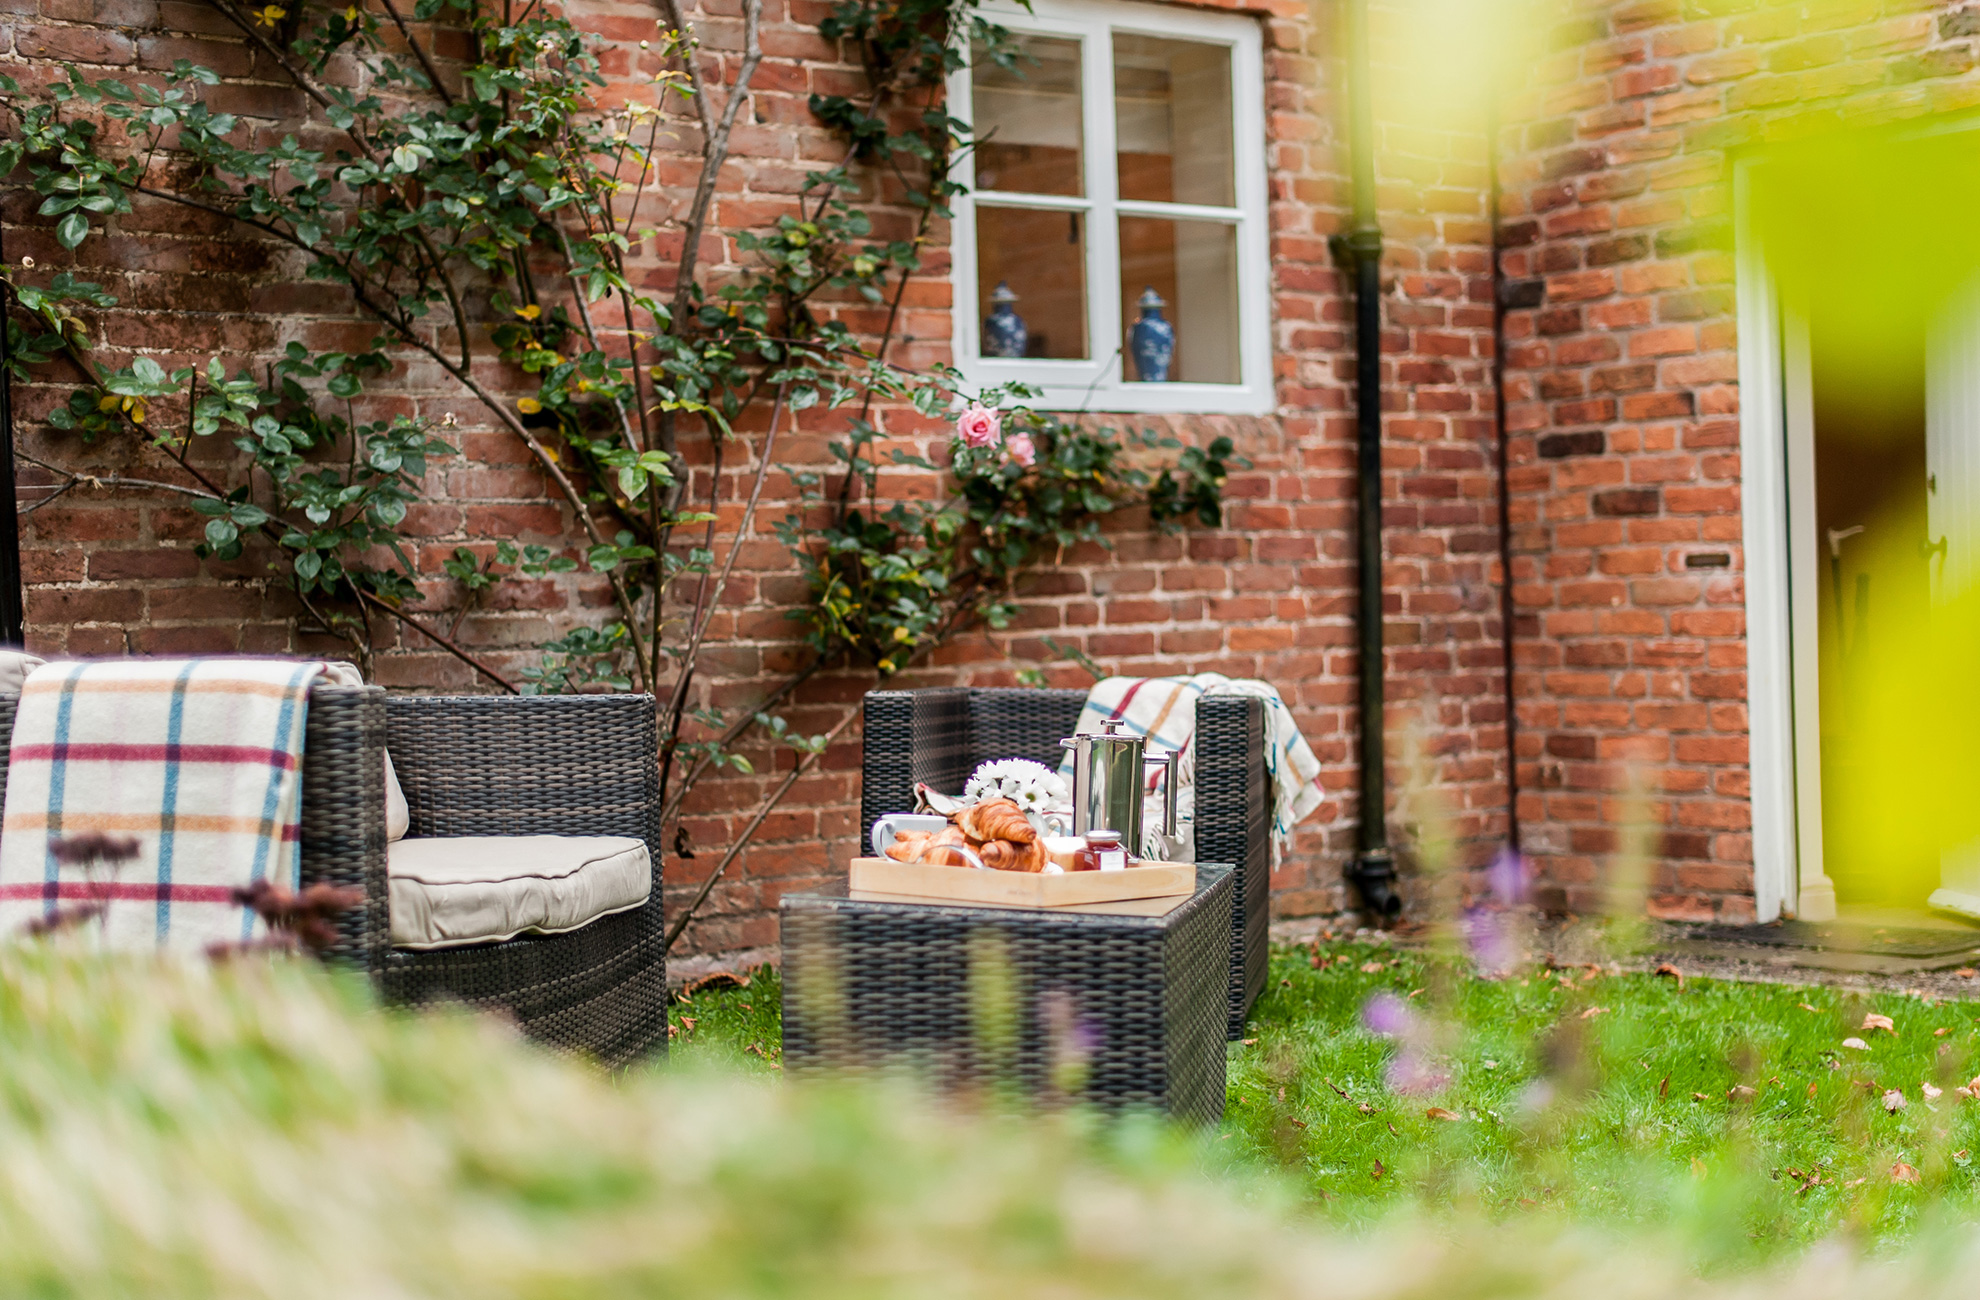 Enjoy breakfast outdoors at Combermere Abbey